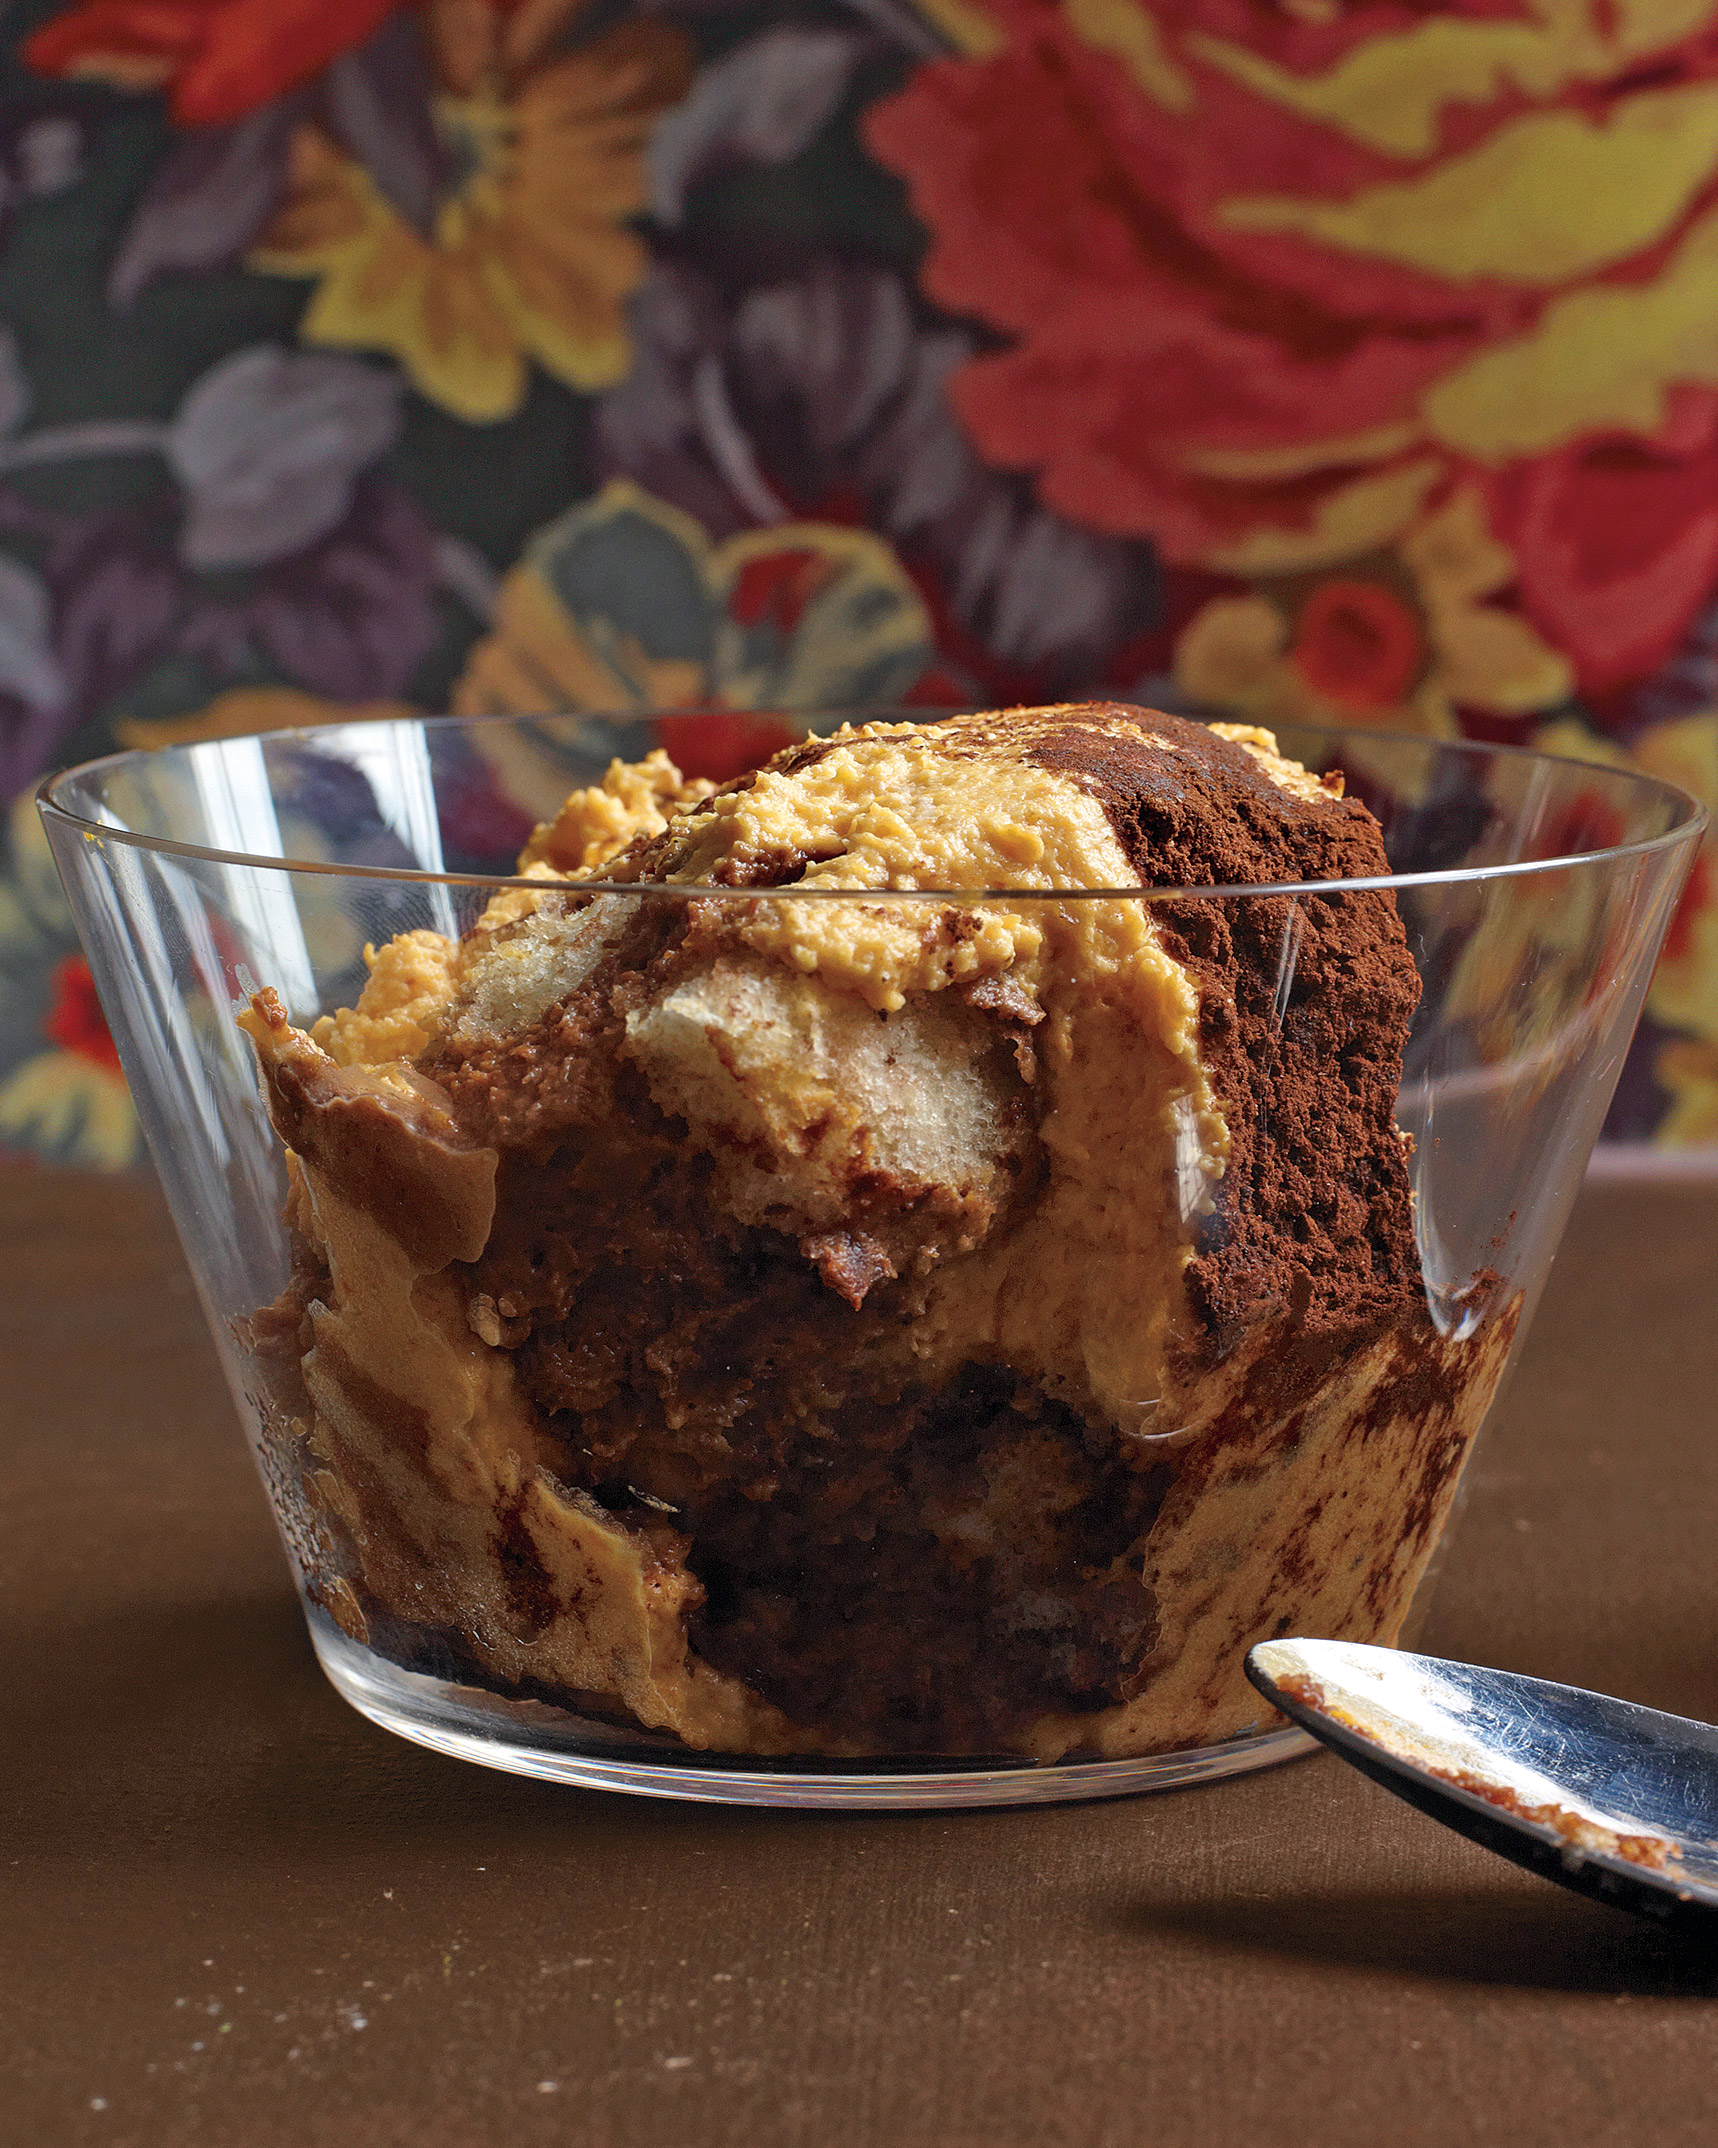 Pumpkin-Chocolate Tiramisu